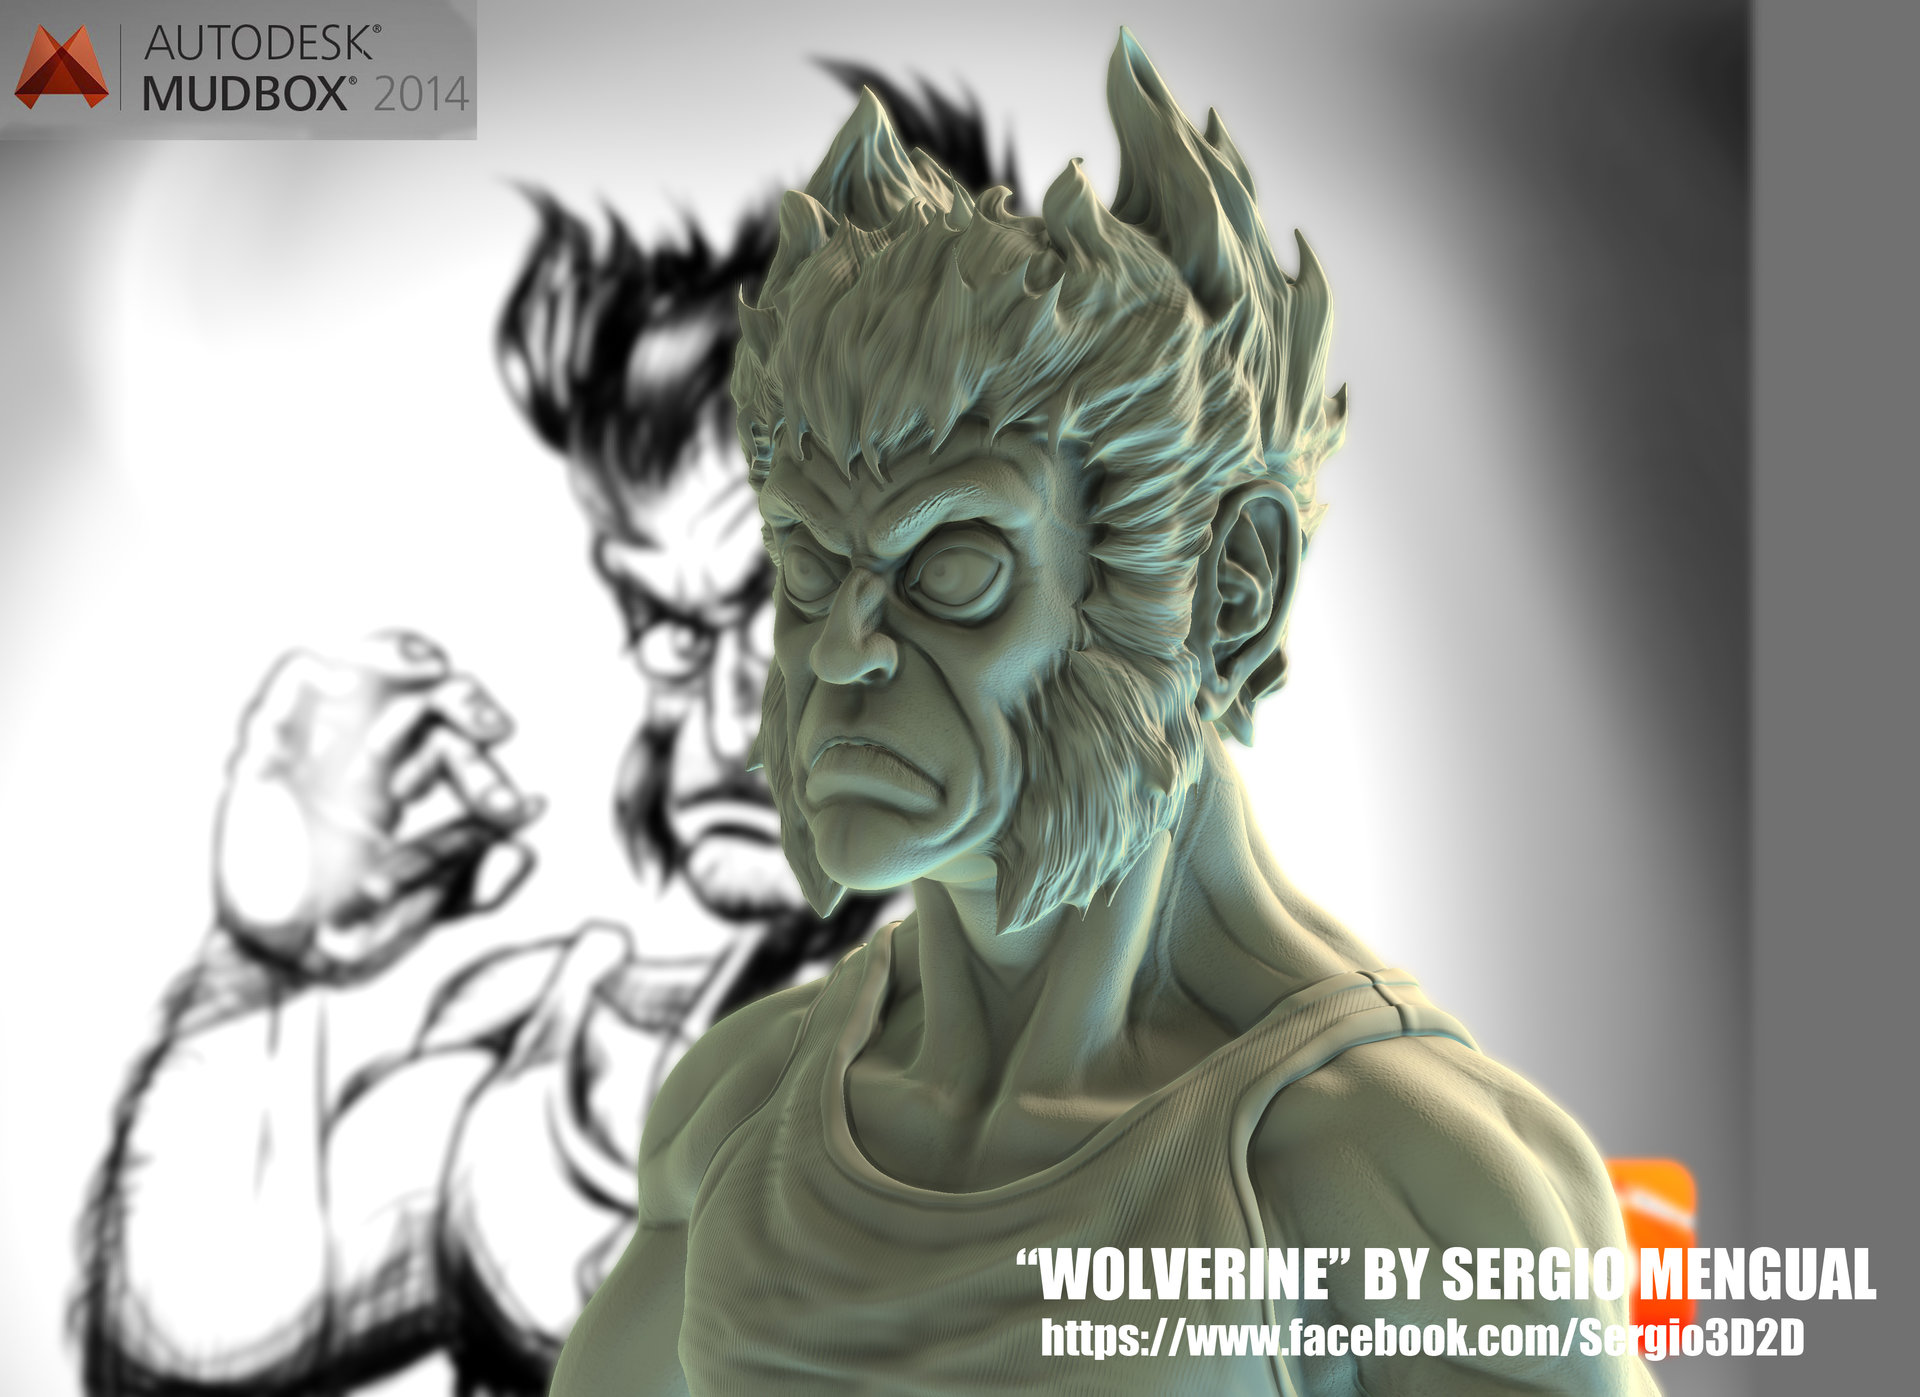 Sergio gabriel mengual wolverine publish1